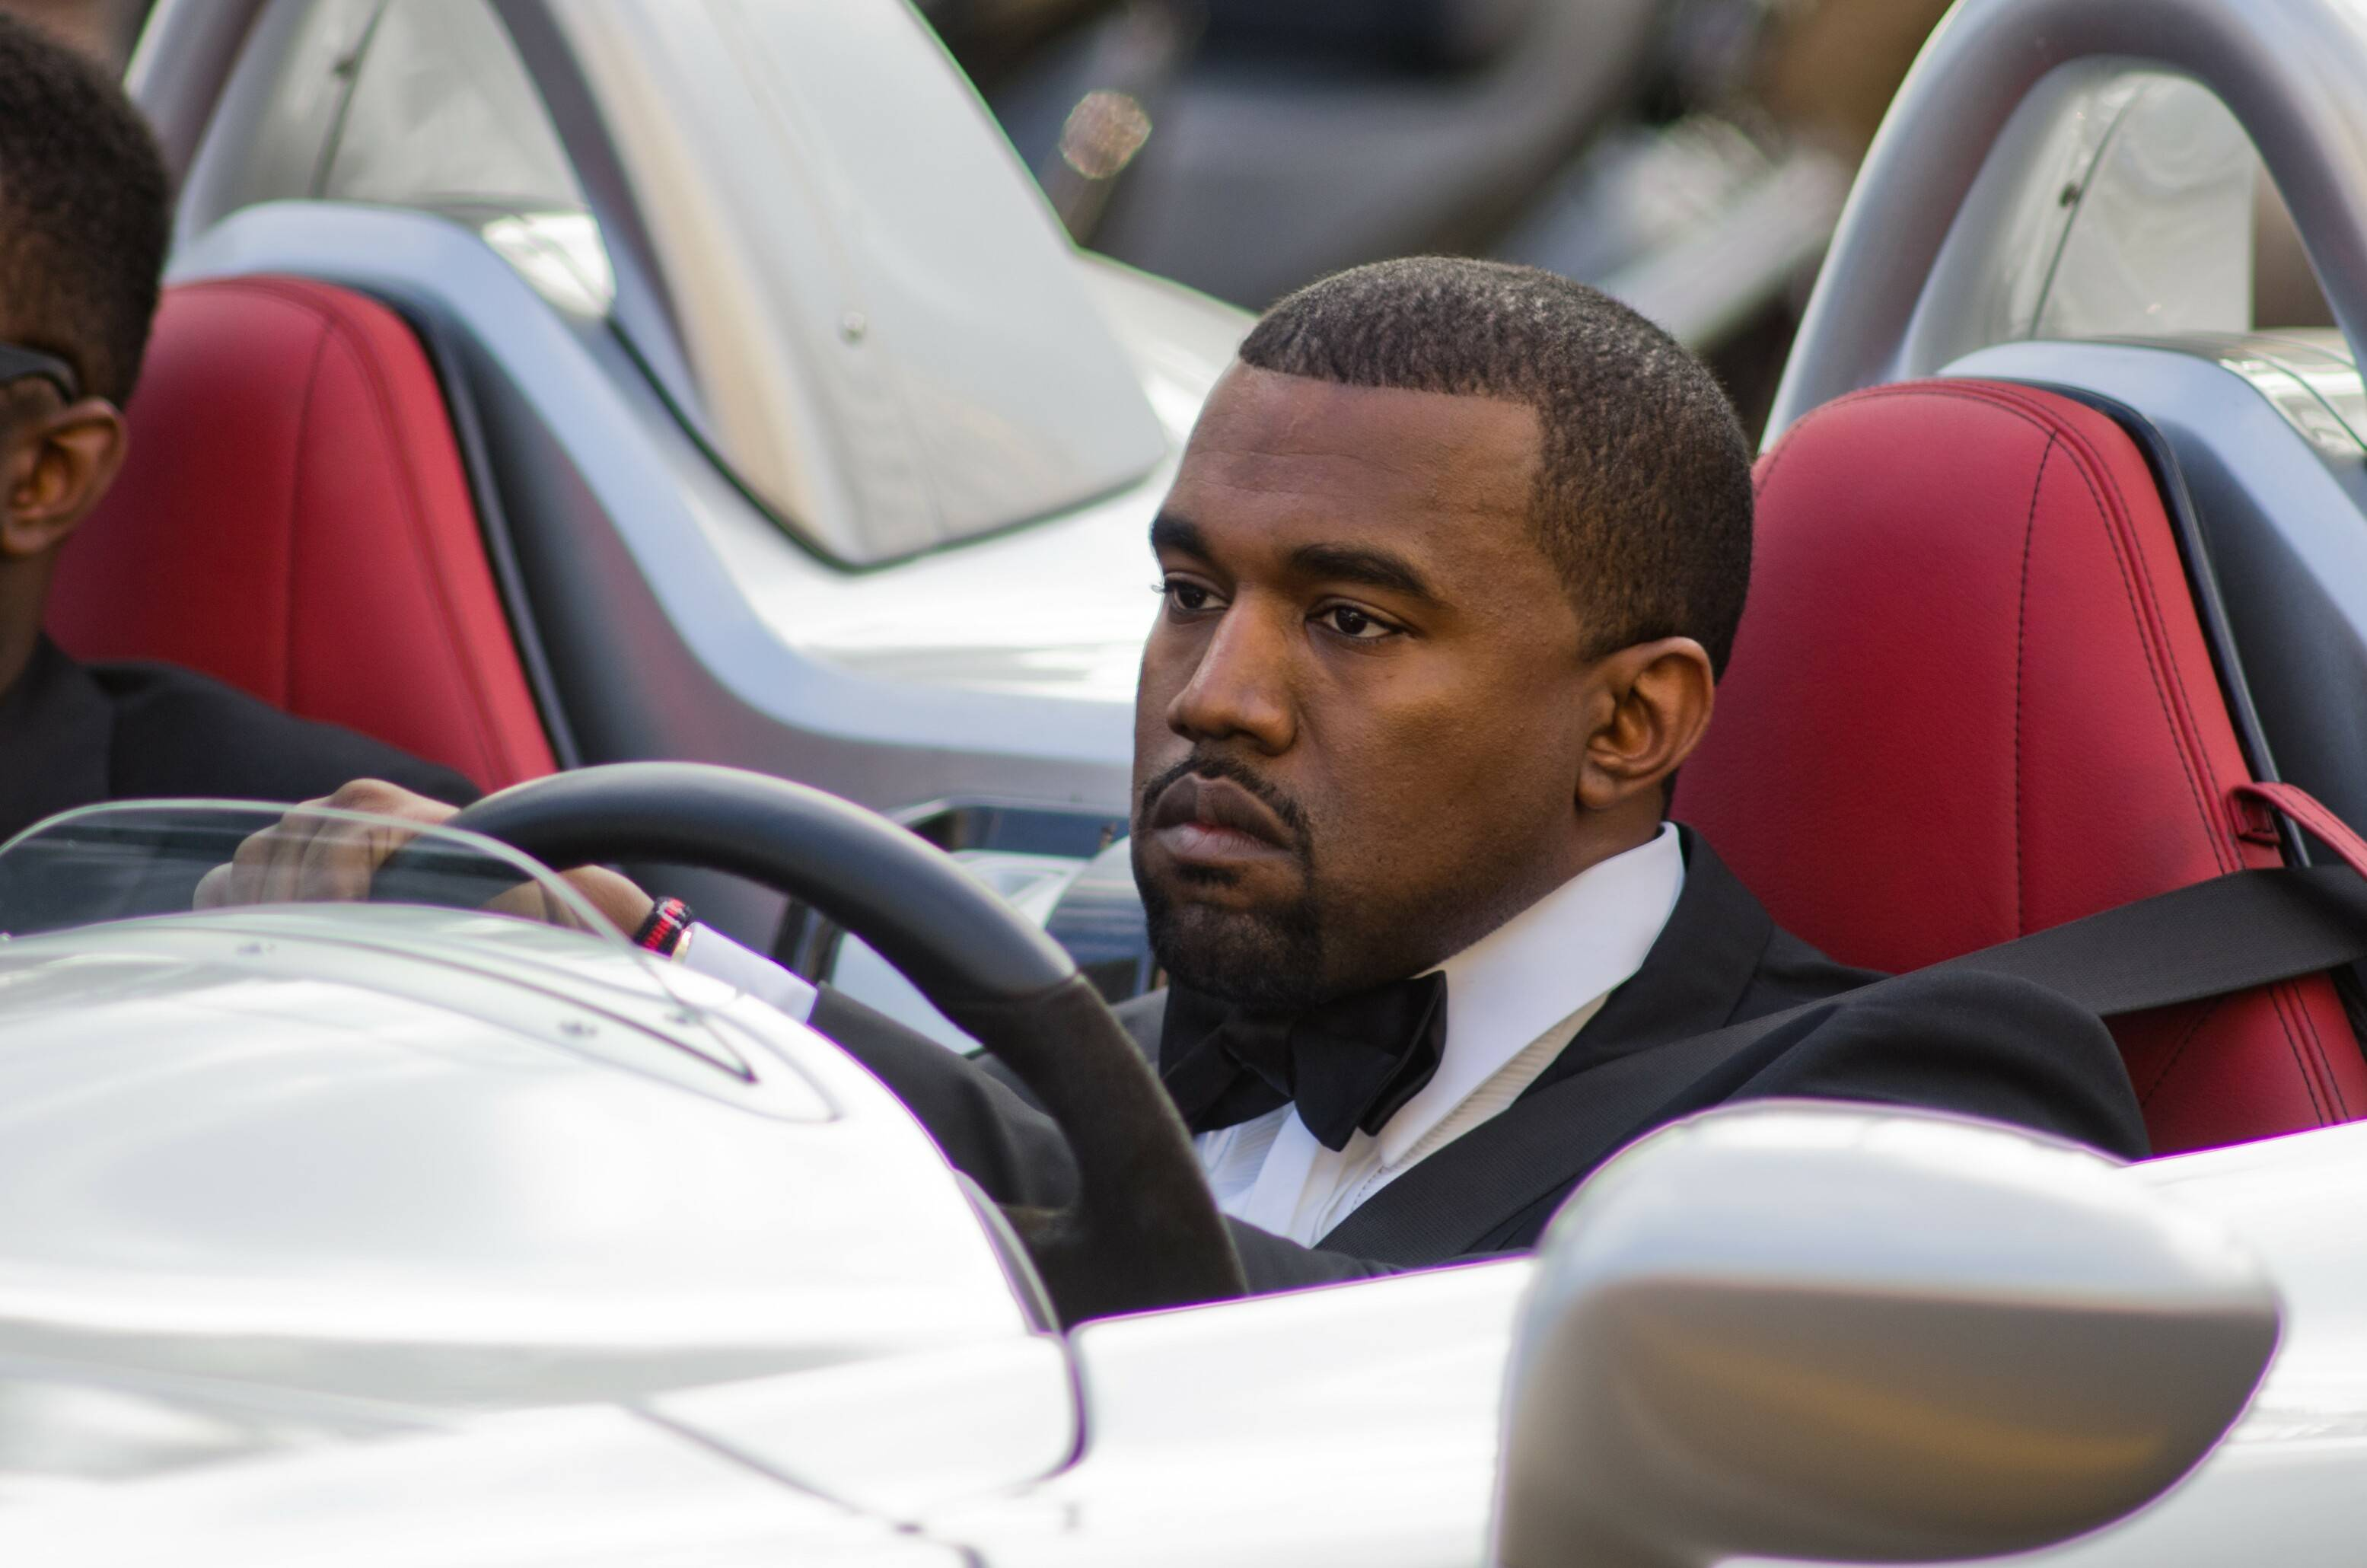 After landing a 10-year deal with Gap, Kayne West sends GPS soaring on new  Yeezy Gap line.